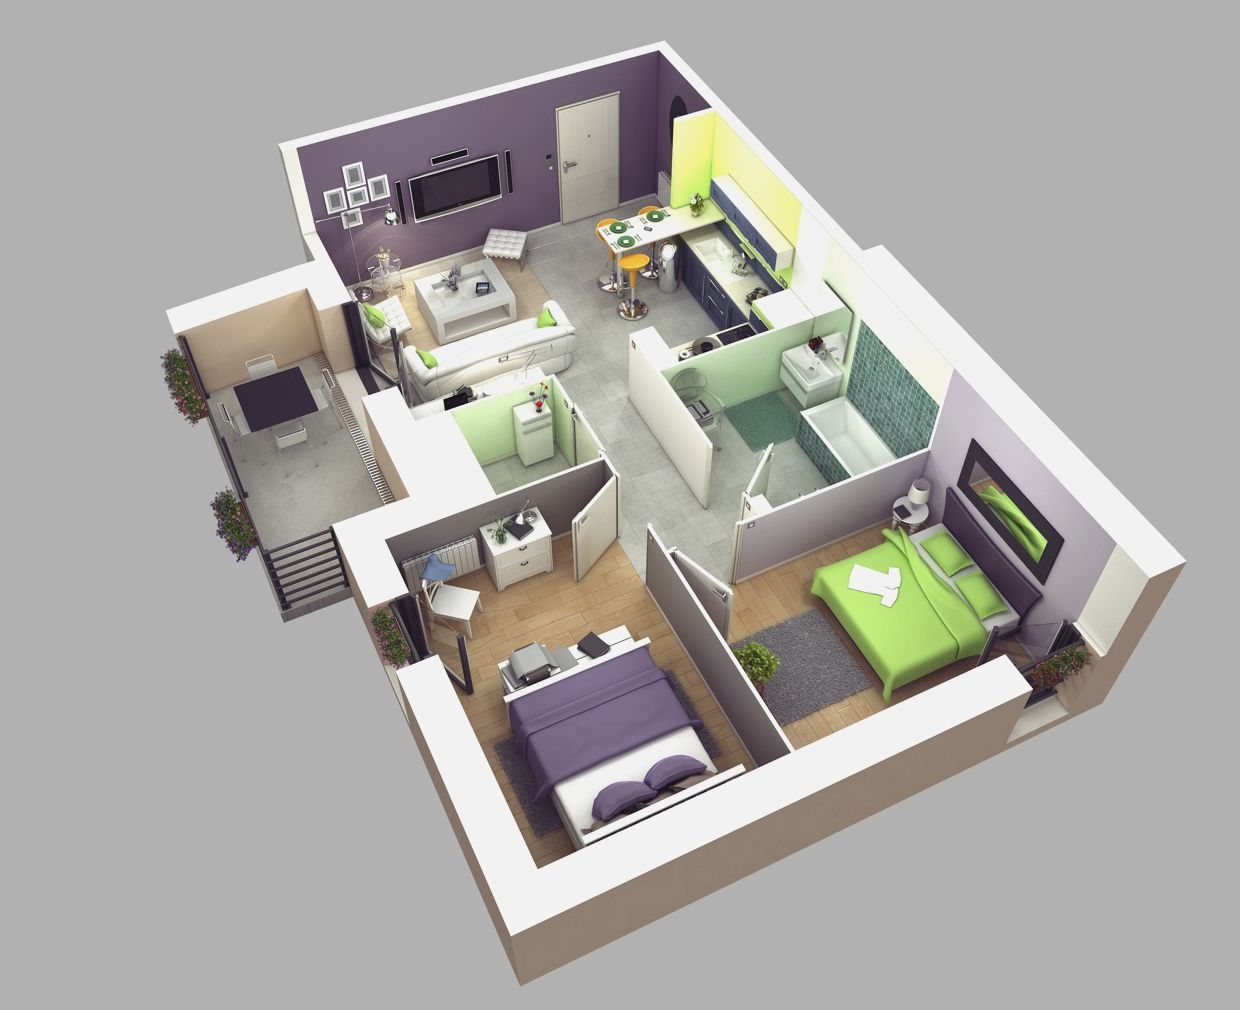 1 bedroom house plans 3d just the two of us apartment 3d house plans in 1000 sq ft